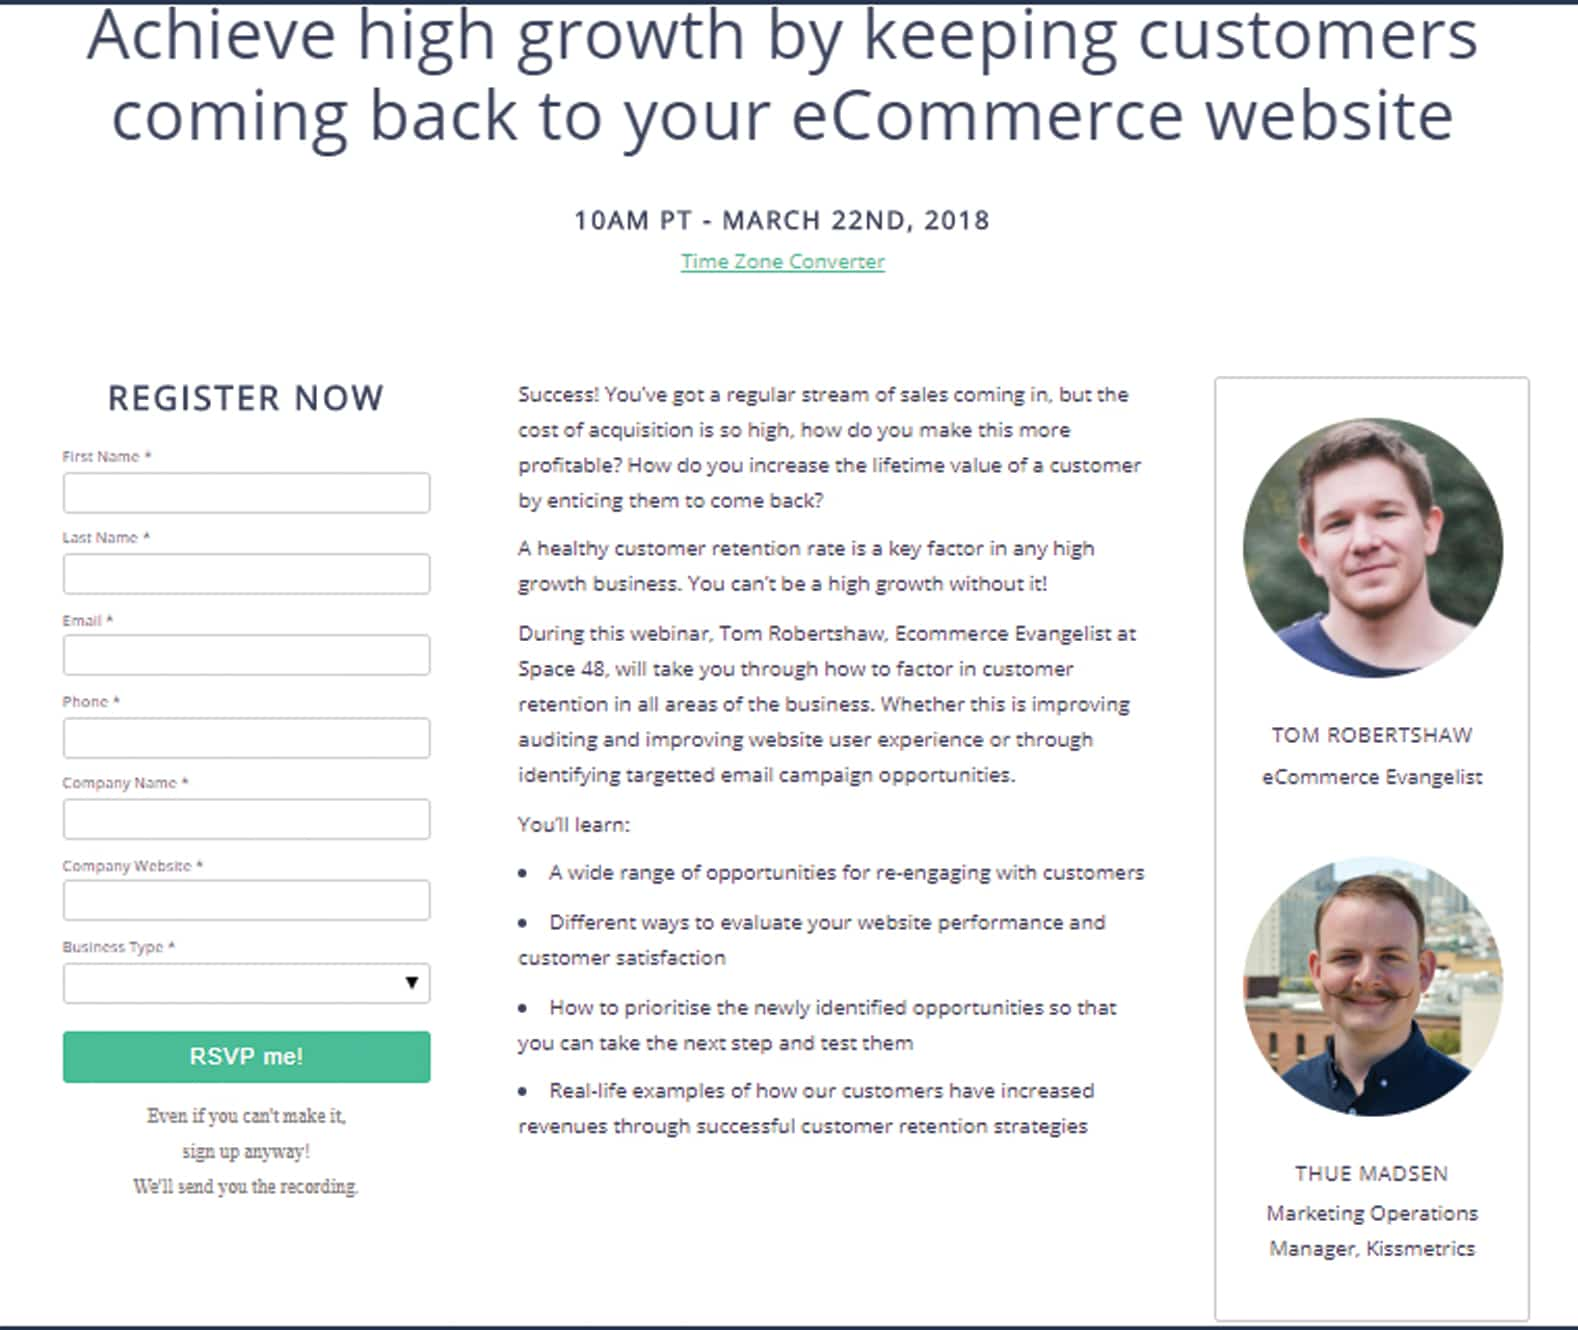 Content upgrade offering a webinar